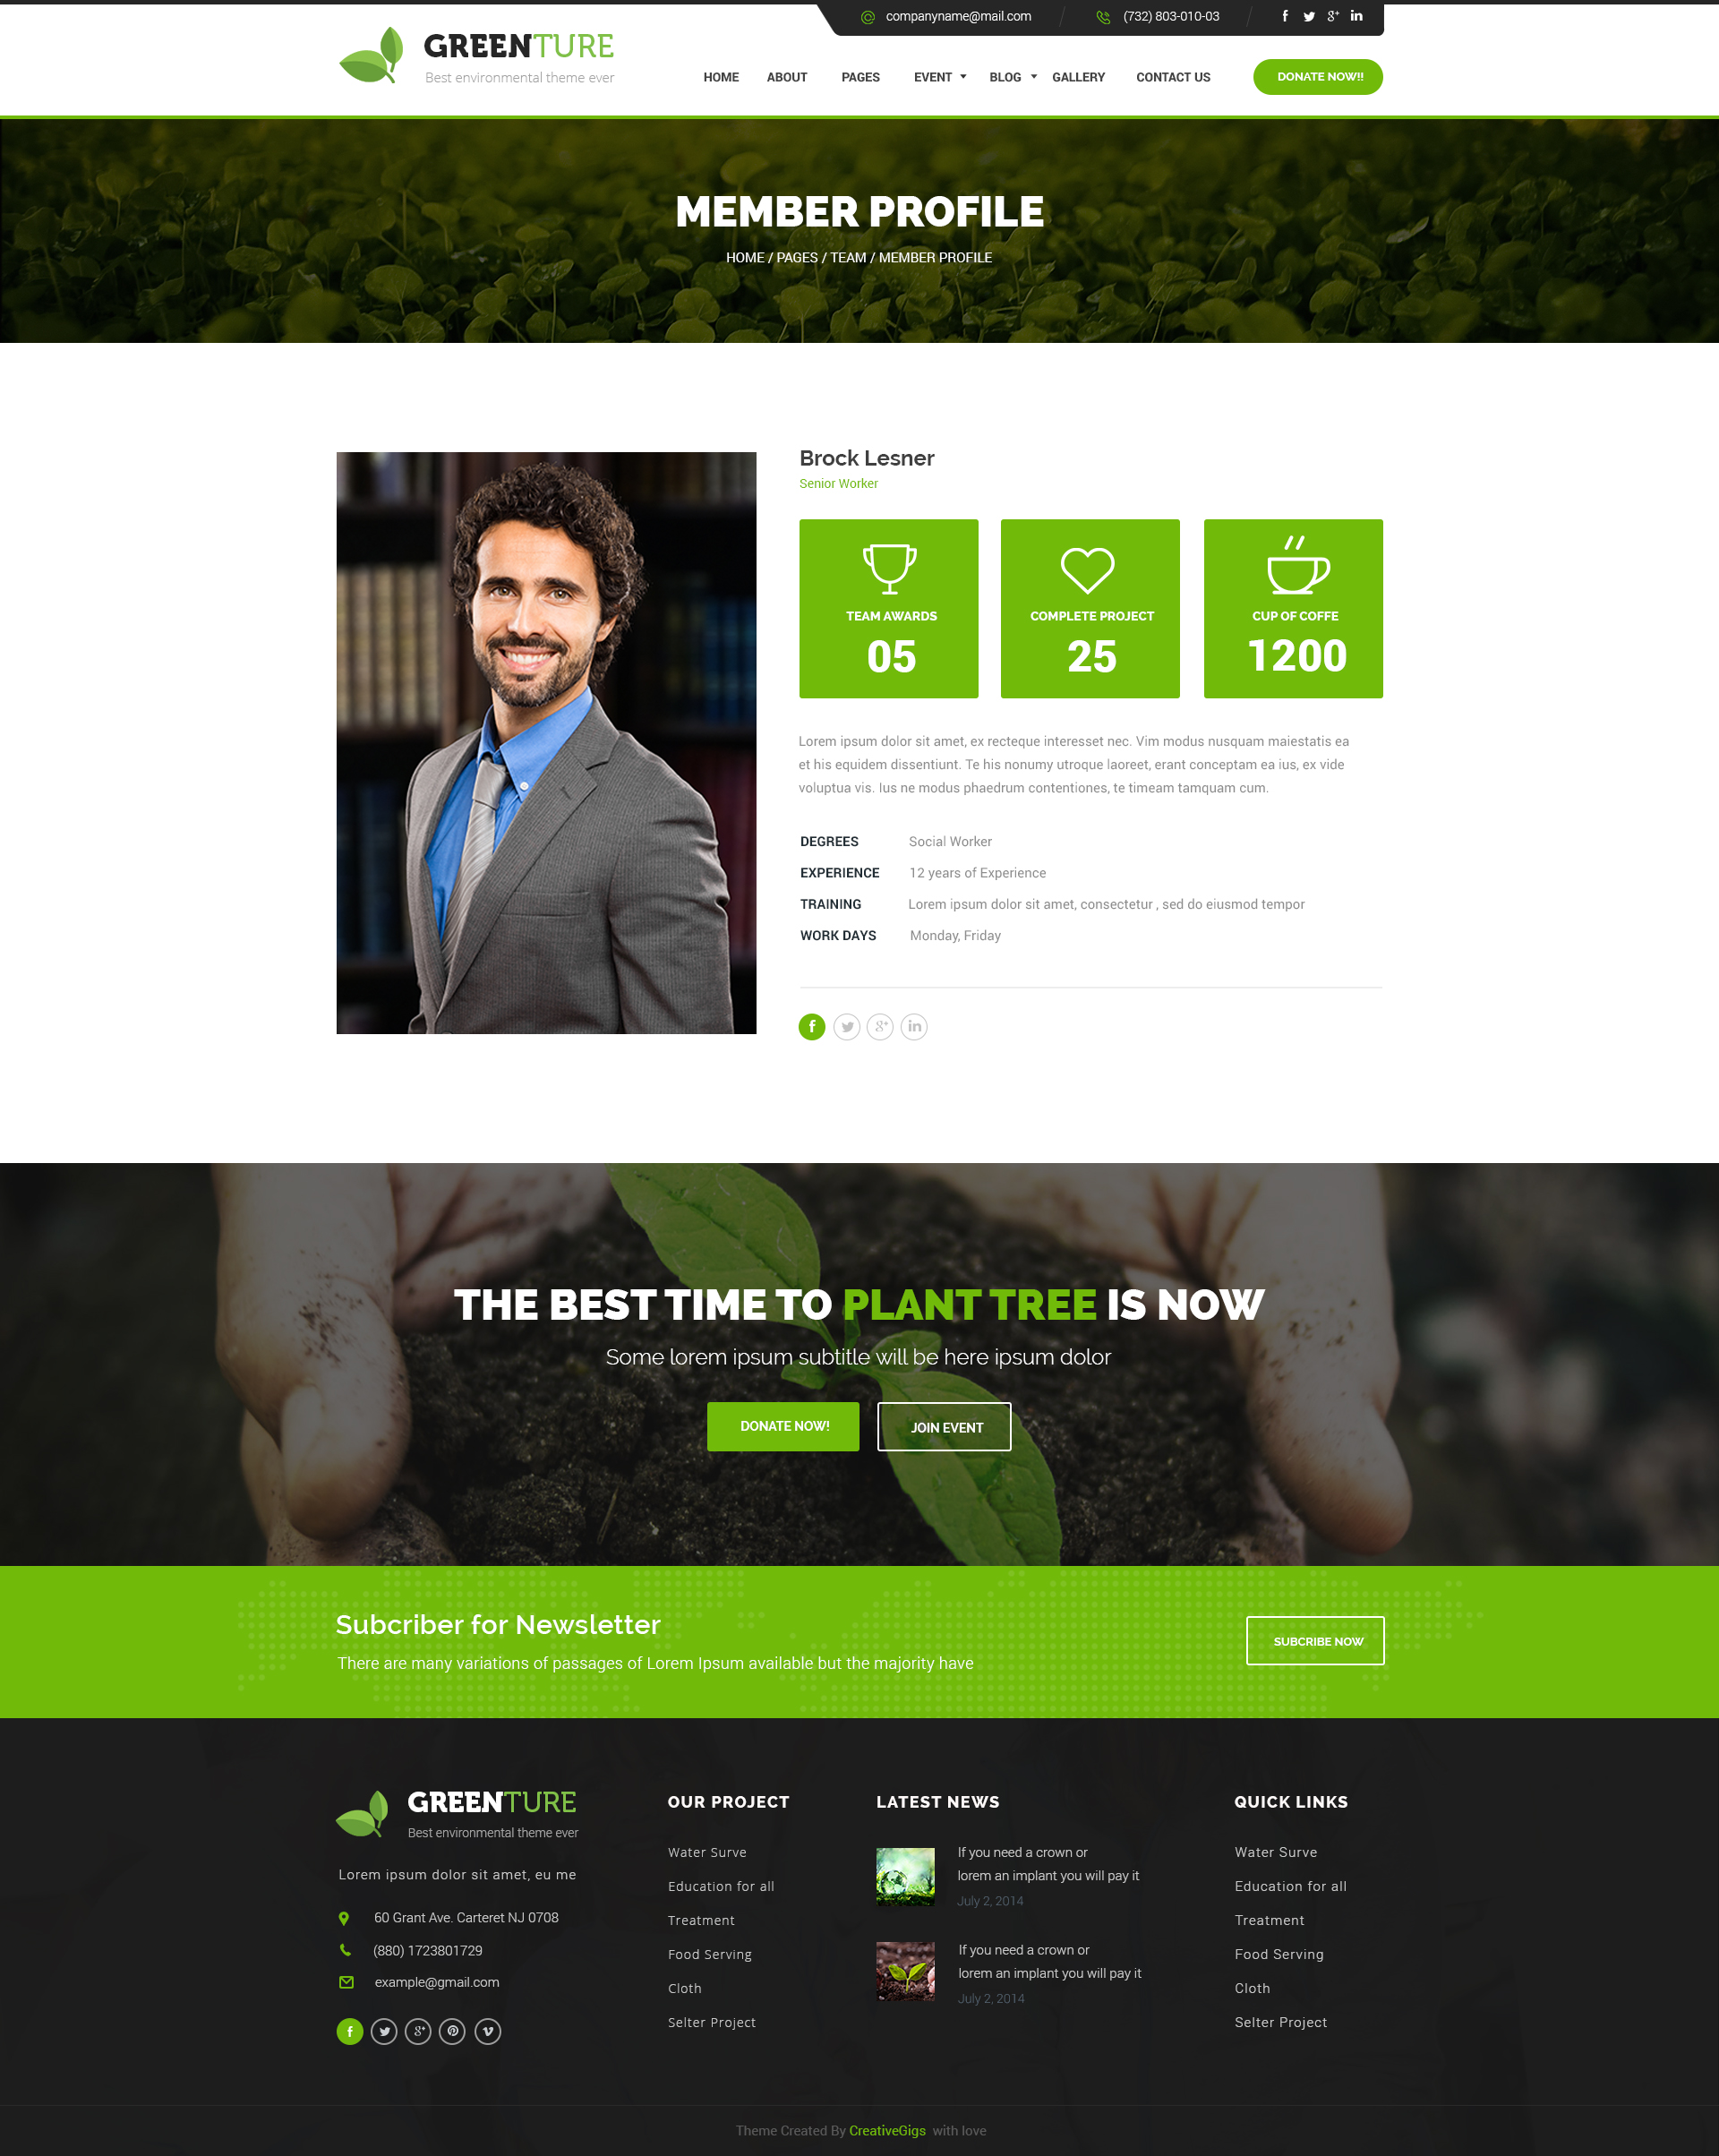 greenture environment non profit psd template by creativegigs. Black Bedroom Furniture Sets. Home Design Ideas